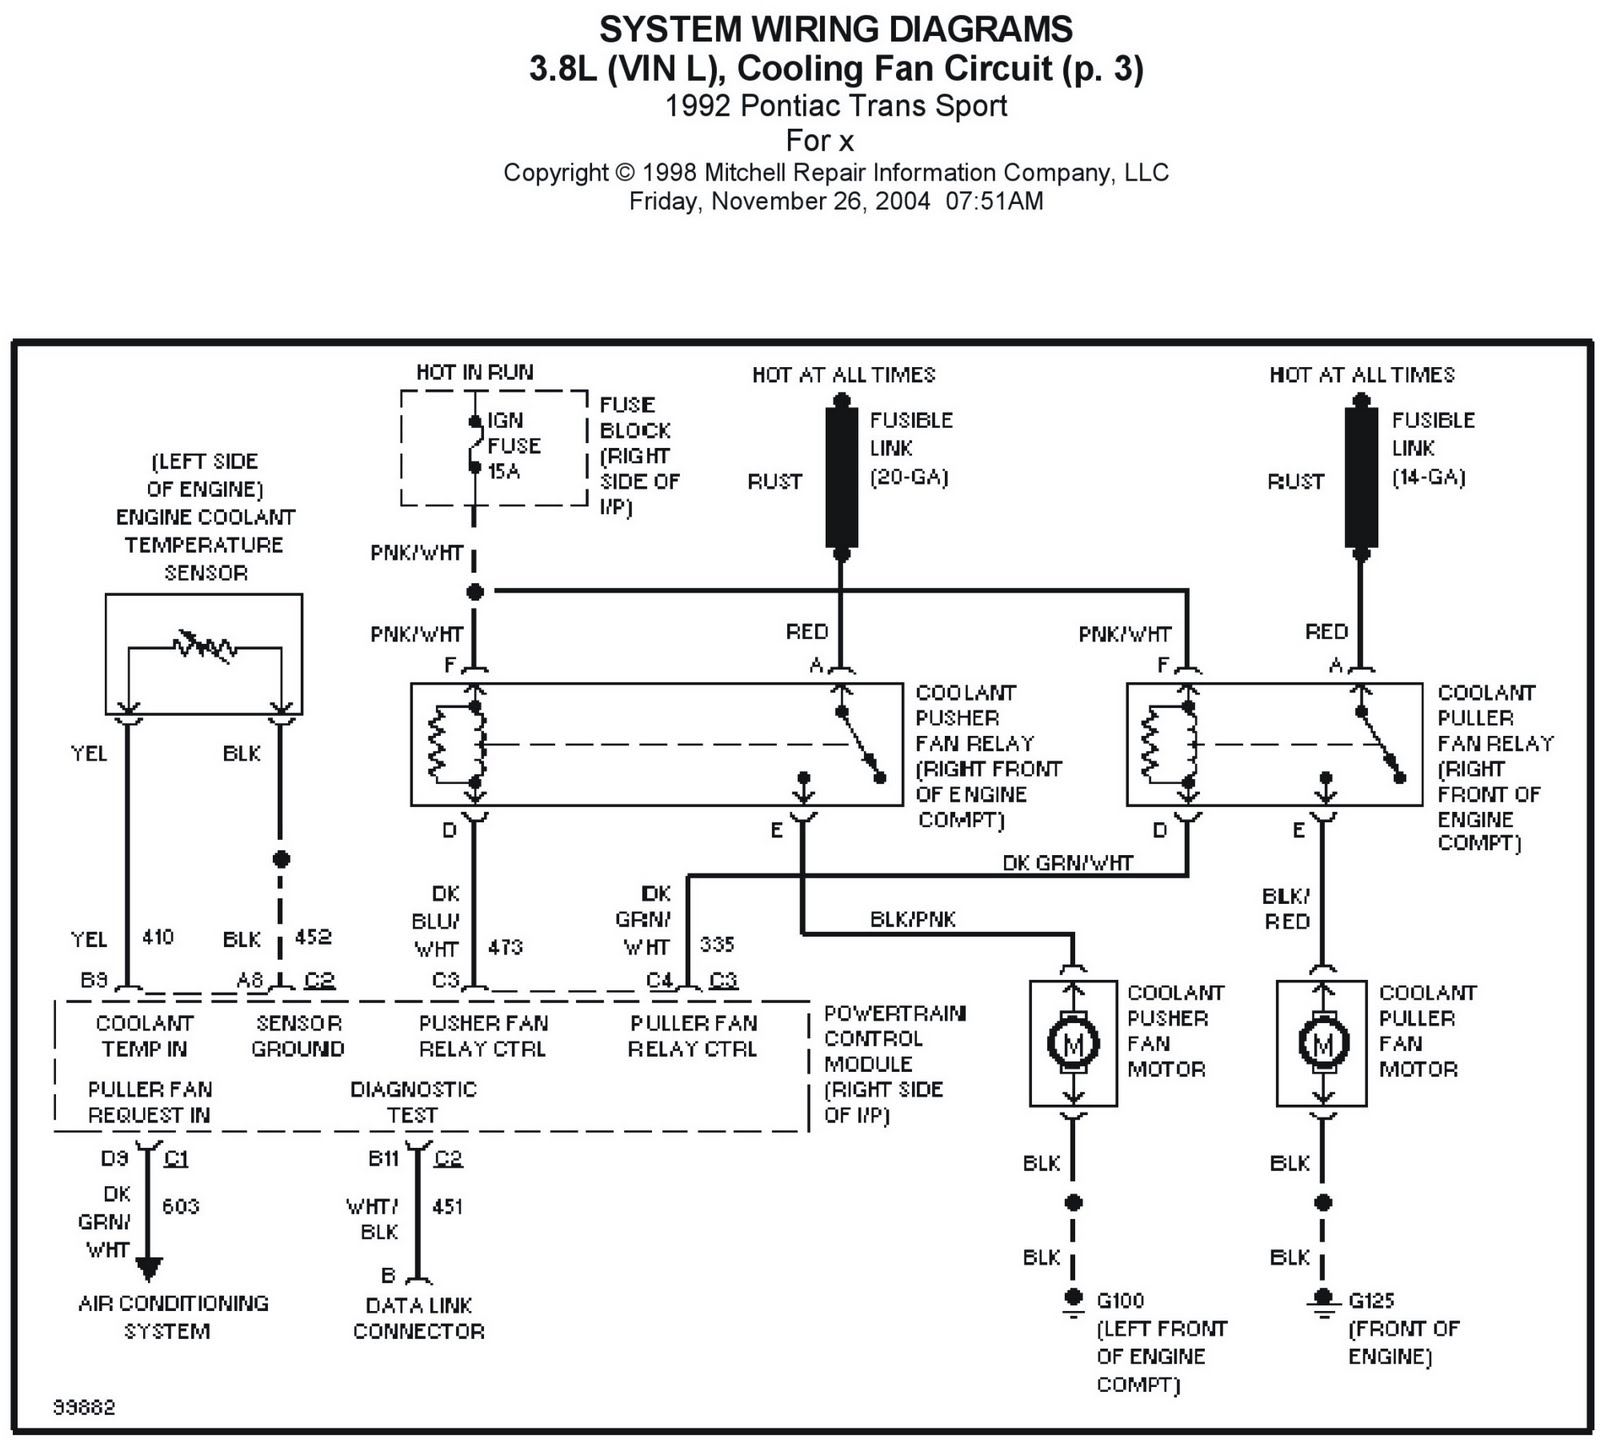 Door Lock Wiring Diagram 1995 Pontiac Transport Data Grand Am 1997 Firebird Diagrams Img F 250 Trans